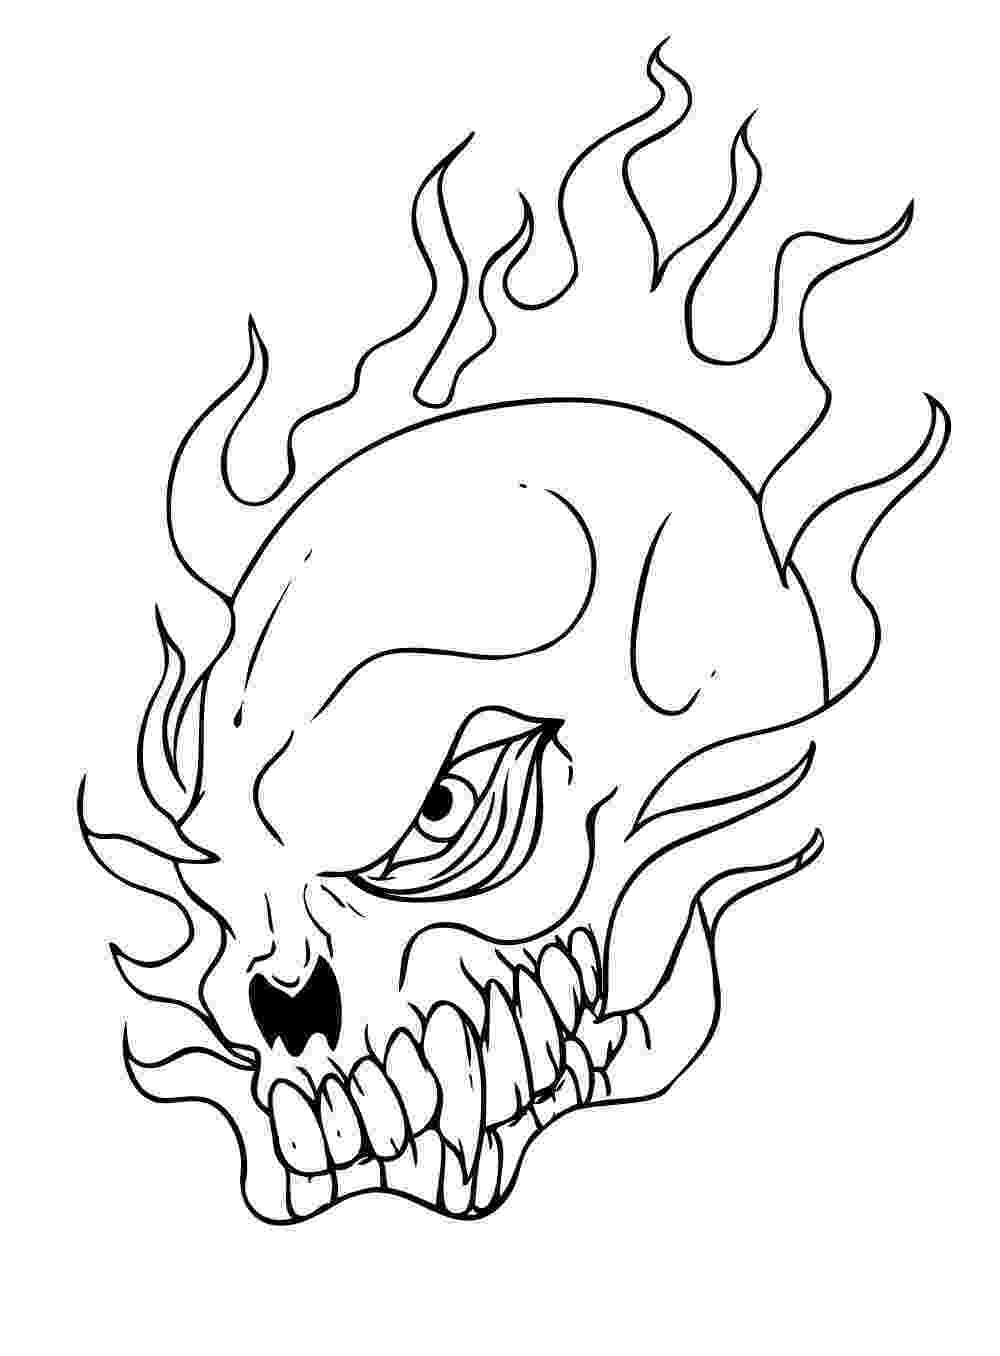 skulls coloring pages free printable skull coloring pages for kids skulls coloring pages